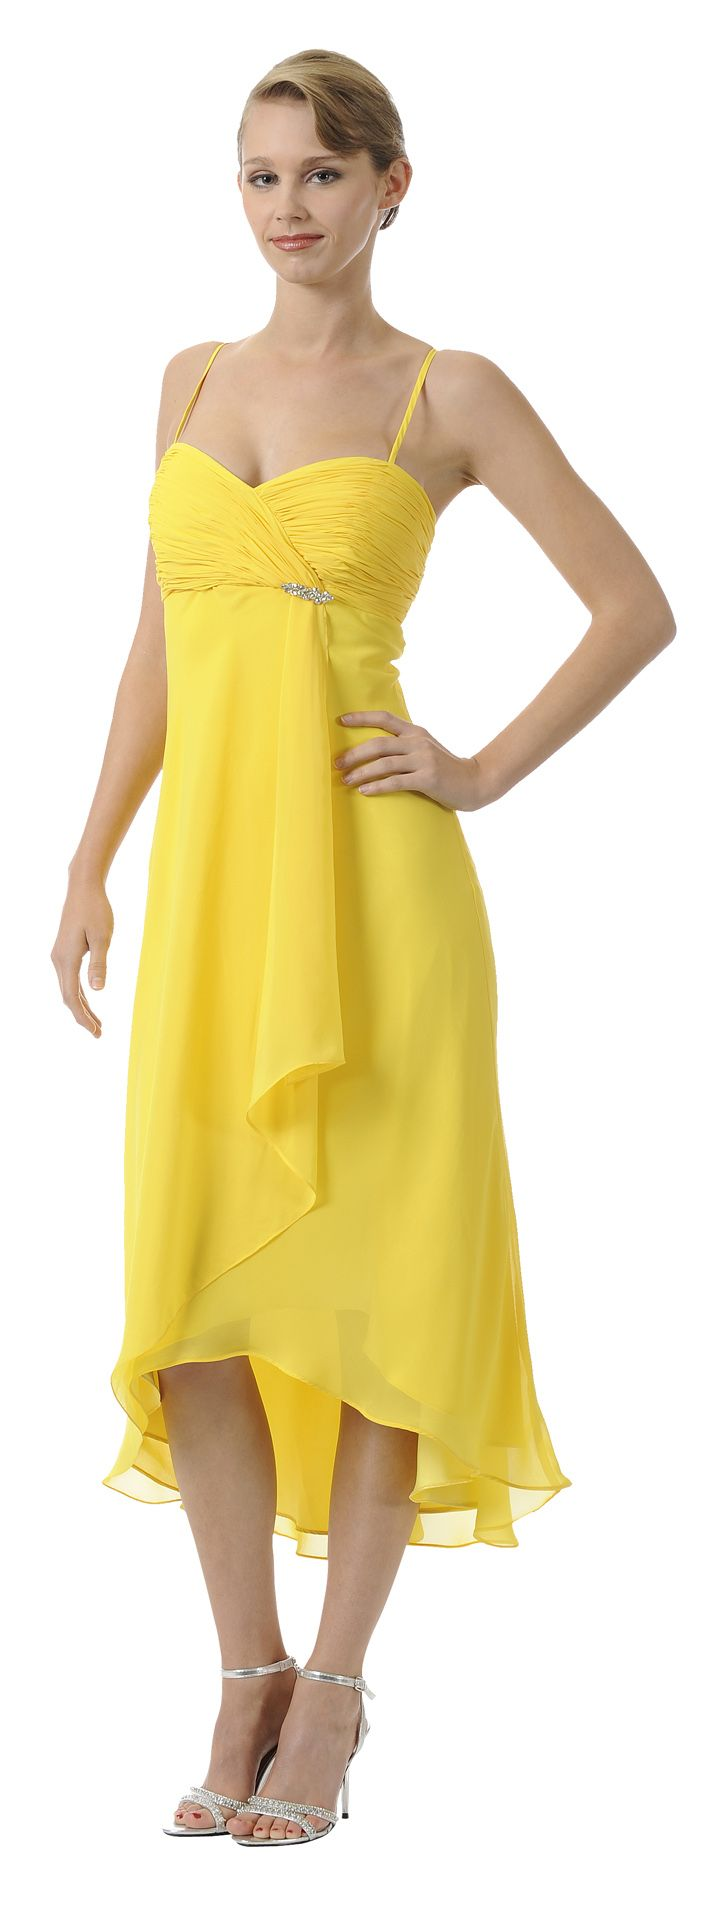 The 25 best yellow bridesmaid dresses uk ideas on pinterest beautiful yellow bridesmaid dress possibly ombrellifo Images